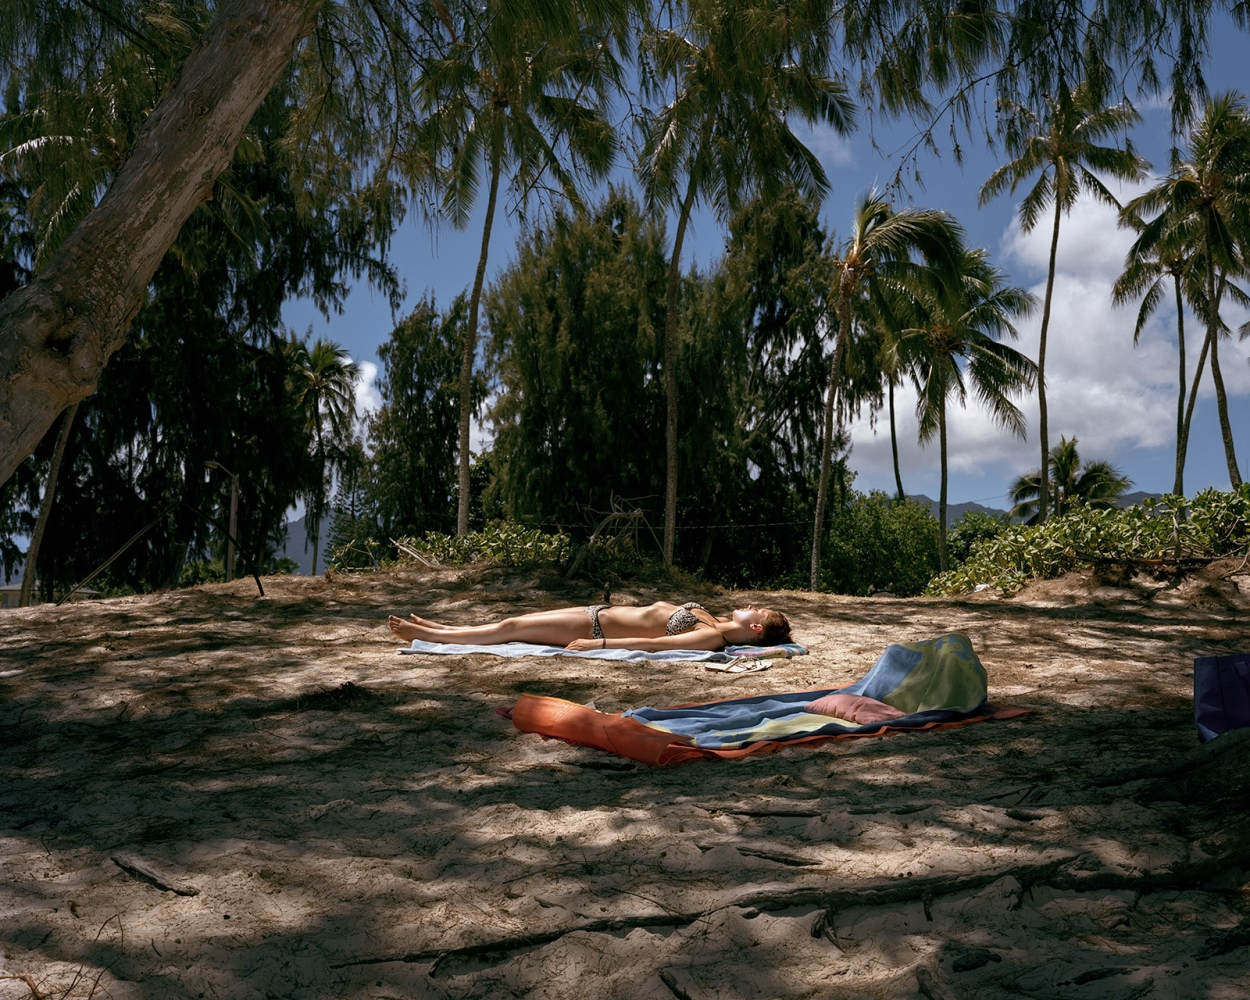 Women Sunbathing, Hawaii 2014